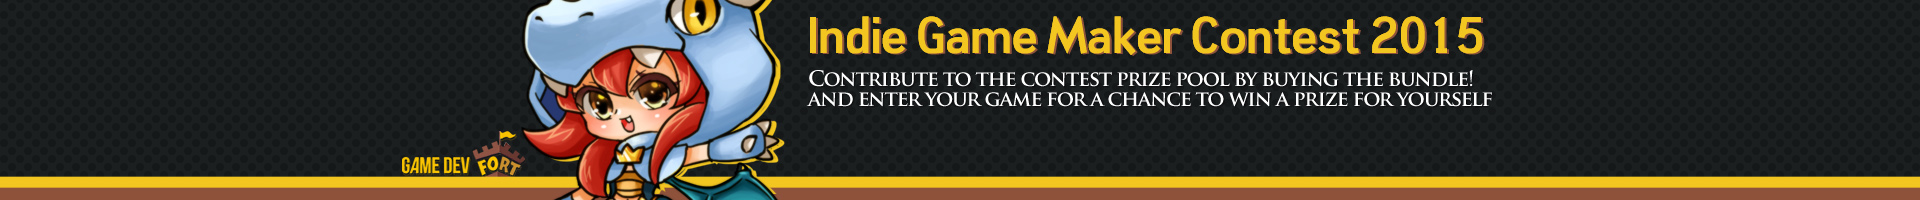 2015 Indie Game Making Contest